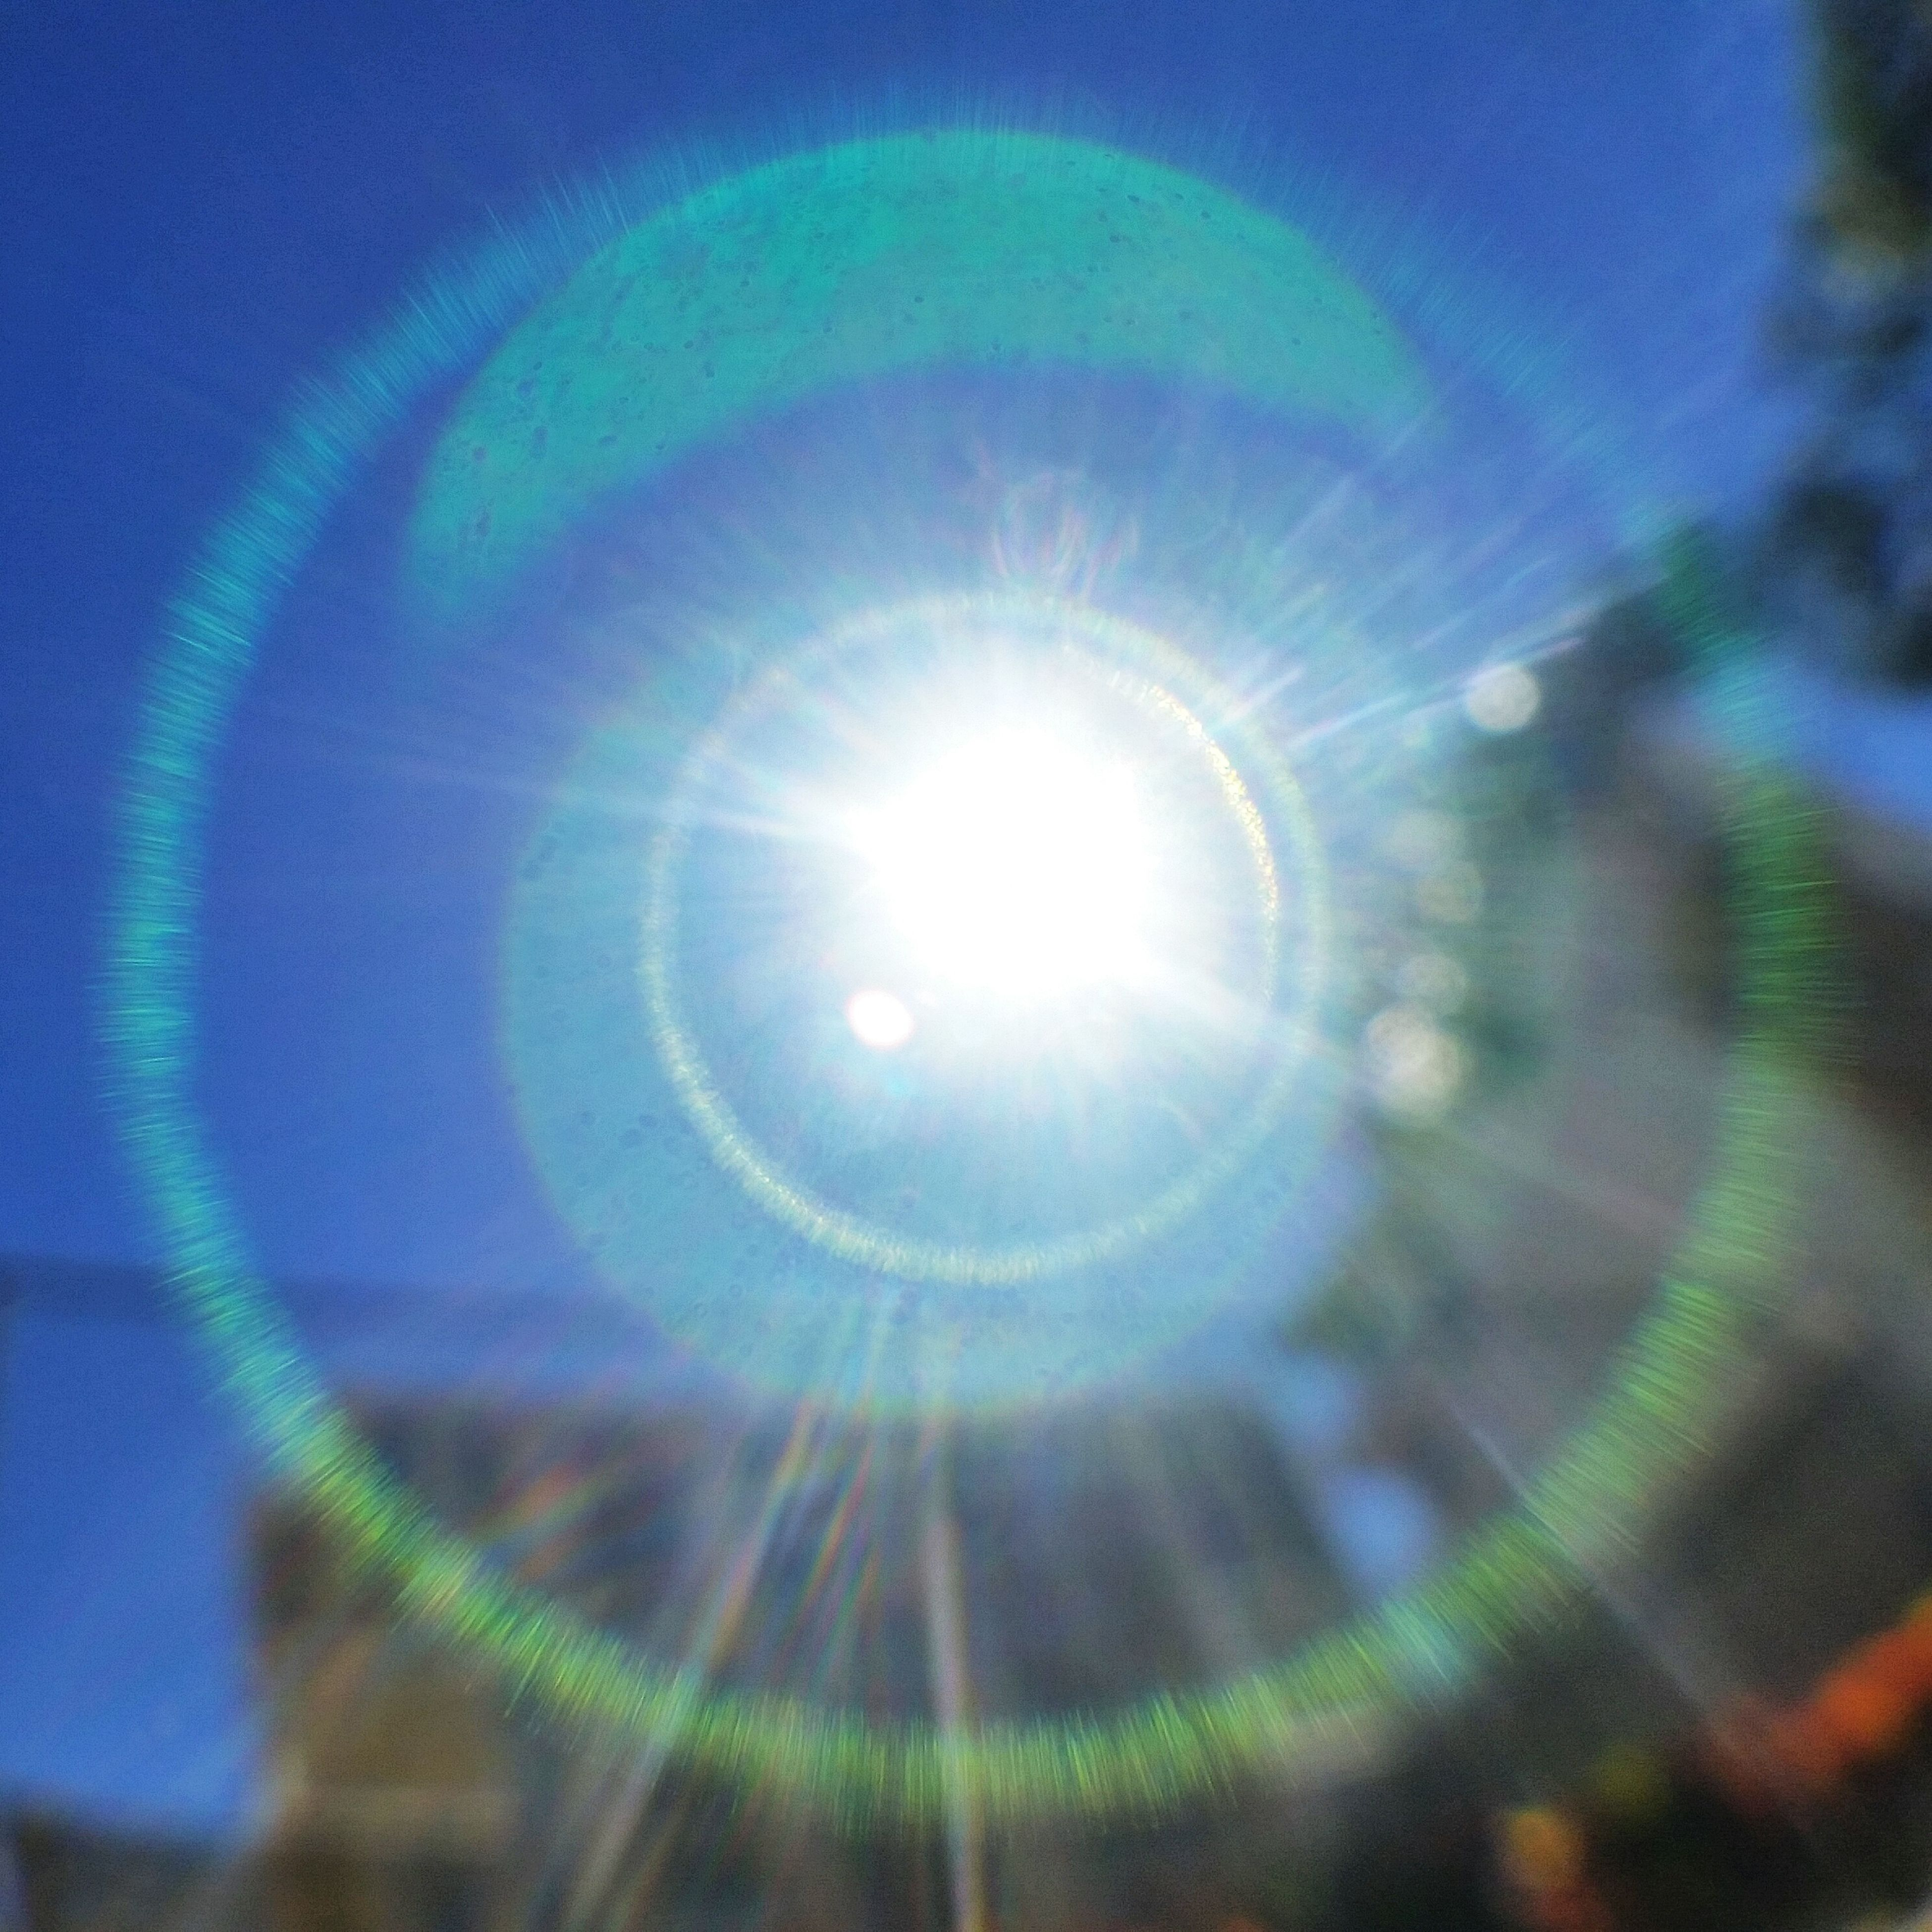 low angle view, lens flare, illuminated, circle, glowing, pattern, sun, blue, geometric shape, sky, lighting equipment, no people, bright, shiny, outdoors, night, sunbeam, backgrounds, light - natural phenomenon, sphere